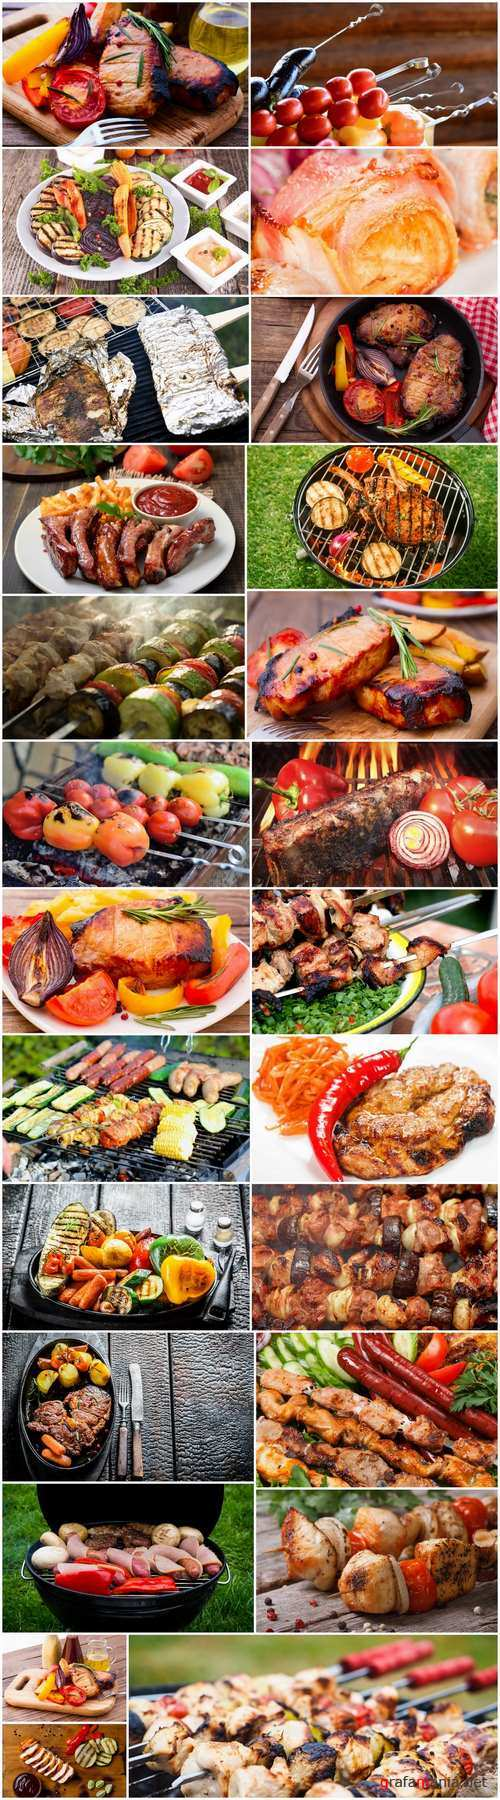 Barbecue grill grilled meat fruit vegetables 25 HQ Jpeg